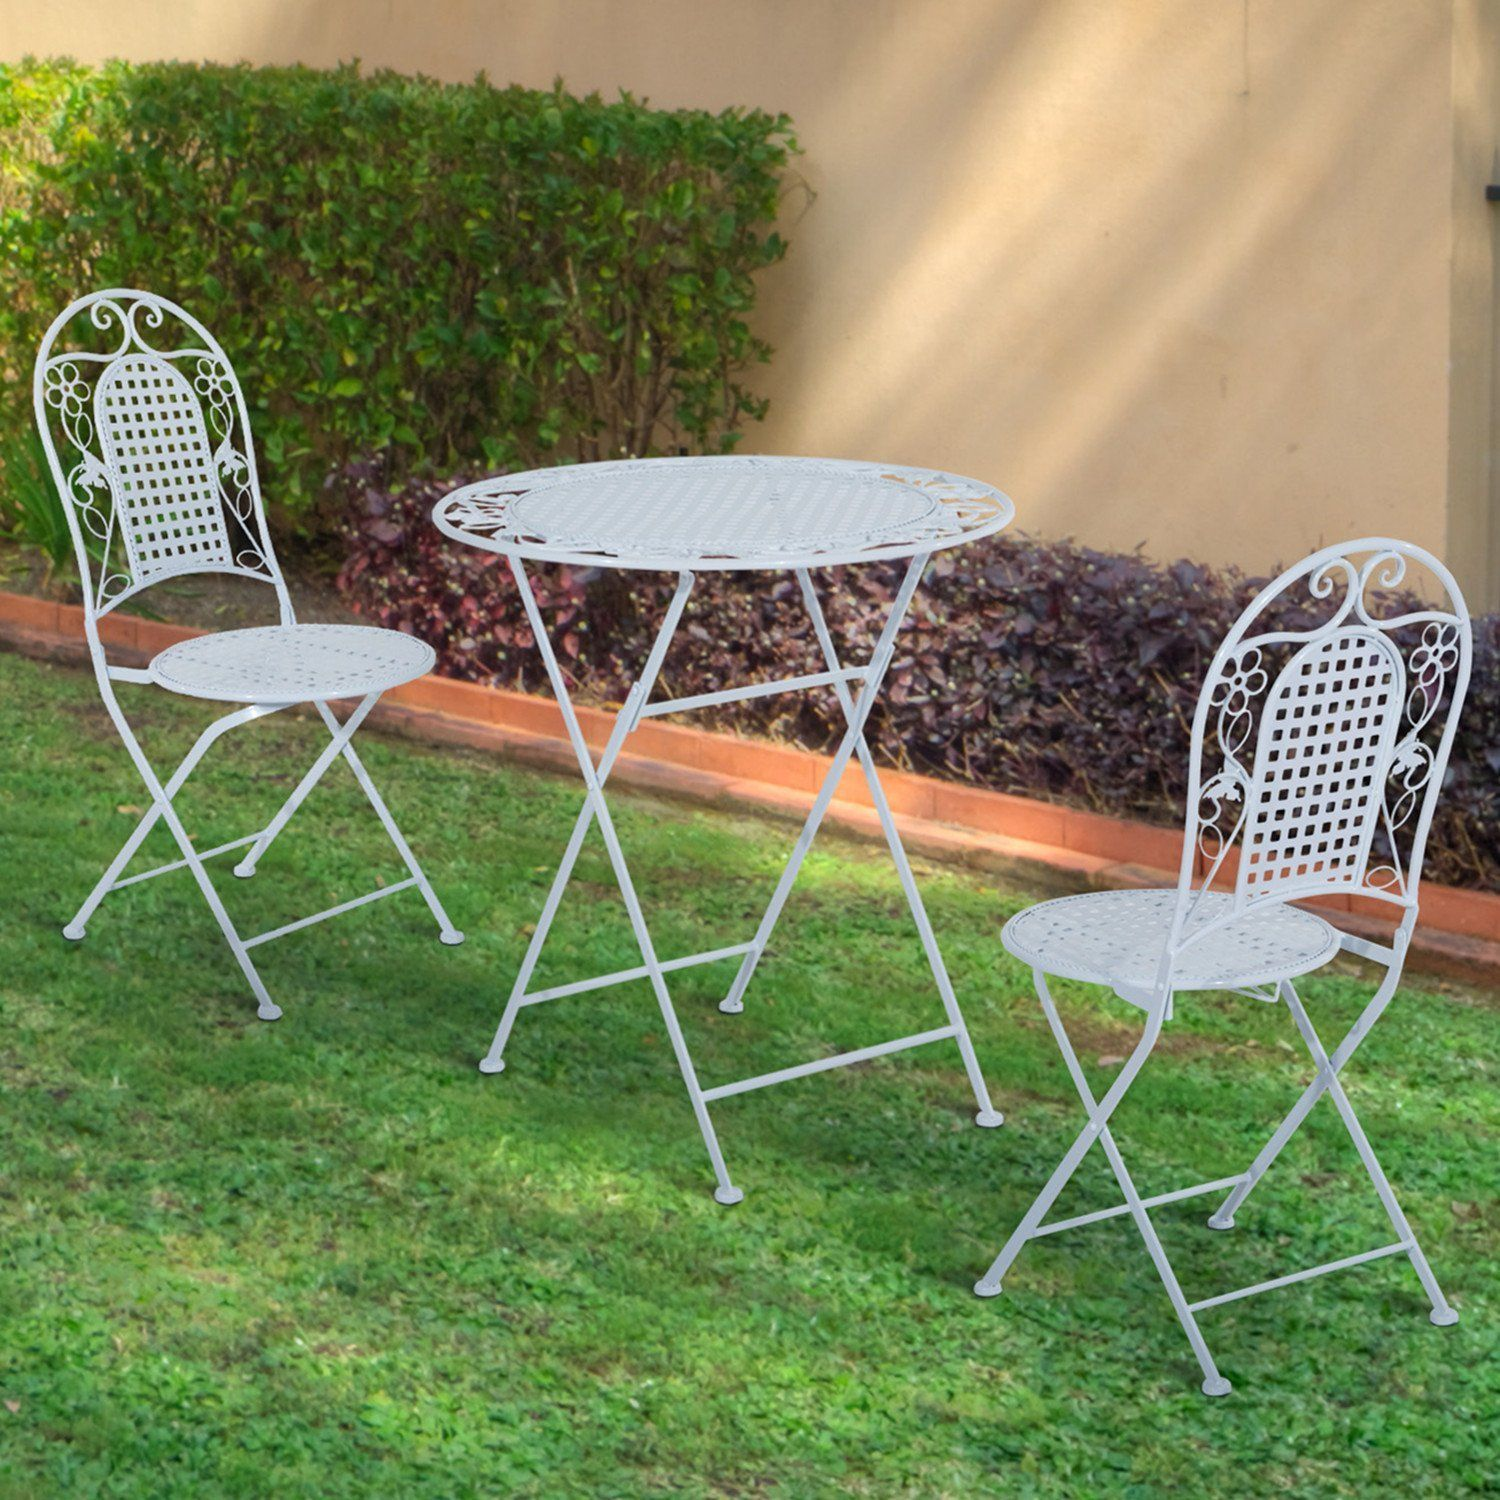 Outsunny 3pc Patio Metal Bistro Set Foldable Garden Table Chair Set